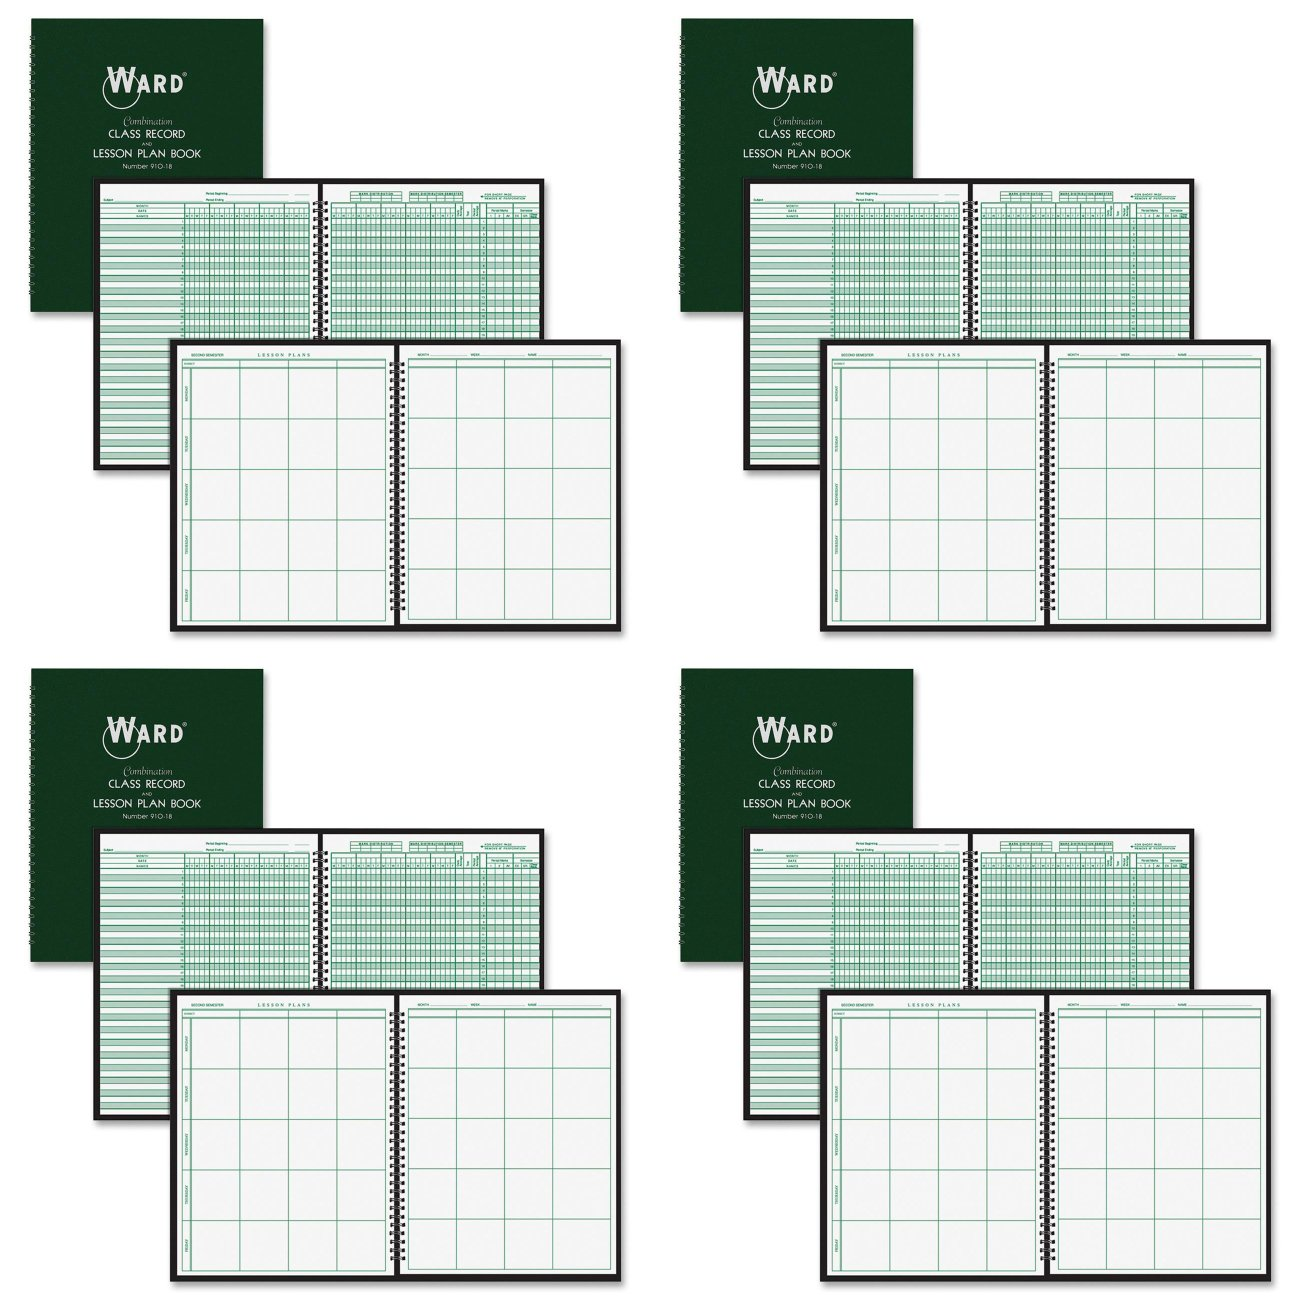 Ward 91018 Combination Record & Plan Book, 9-10 Weeks, 8 Periods/Day, 11 x 8-1/2 (HUB91018), 4 Packs